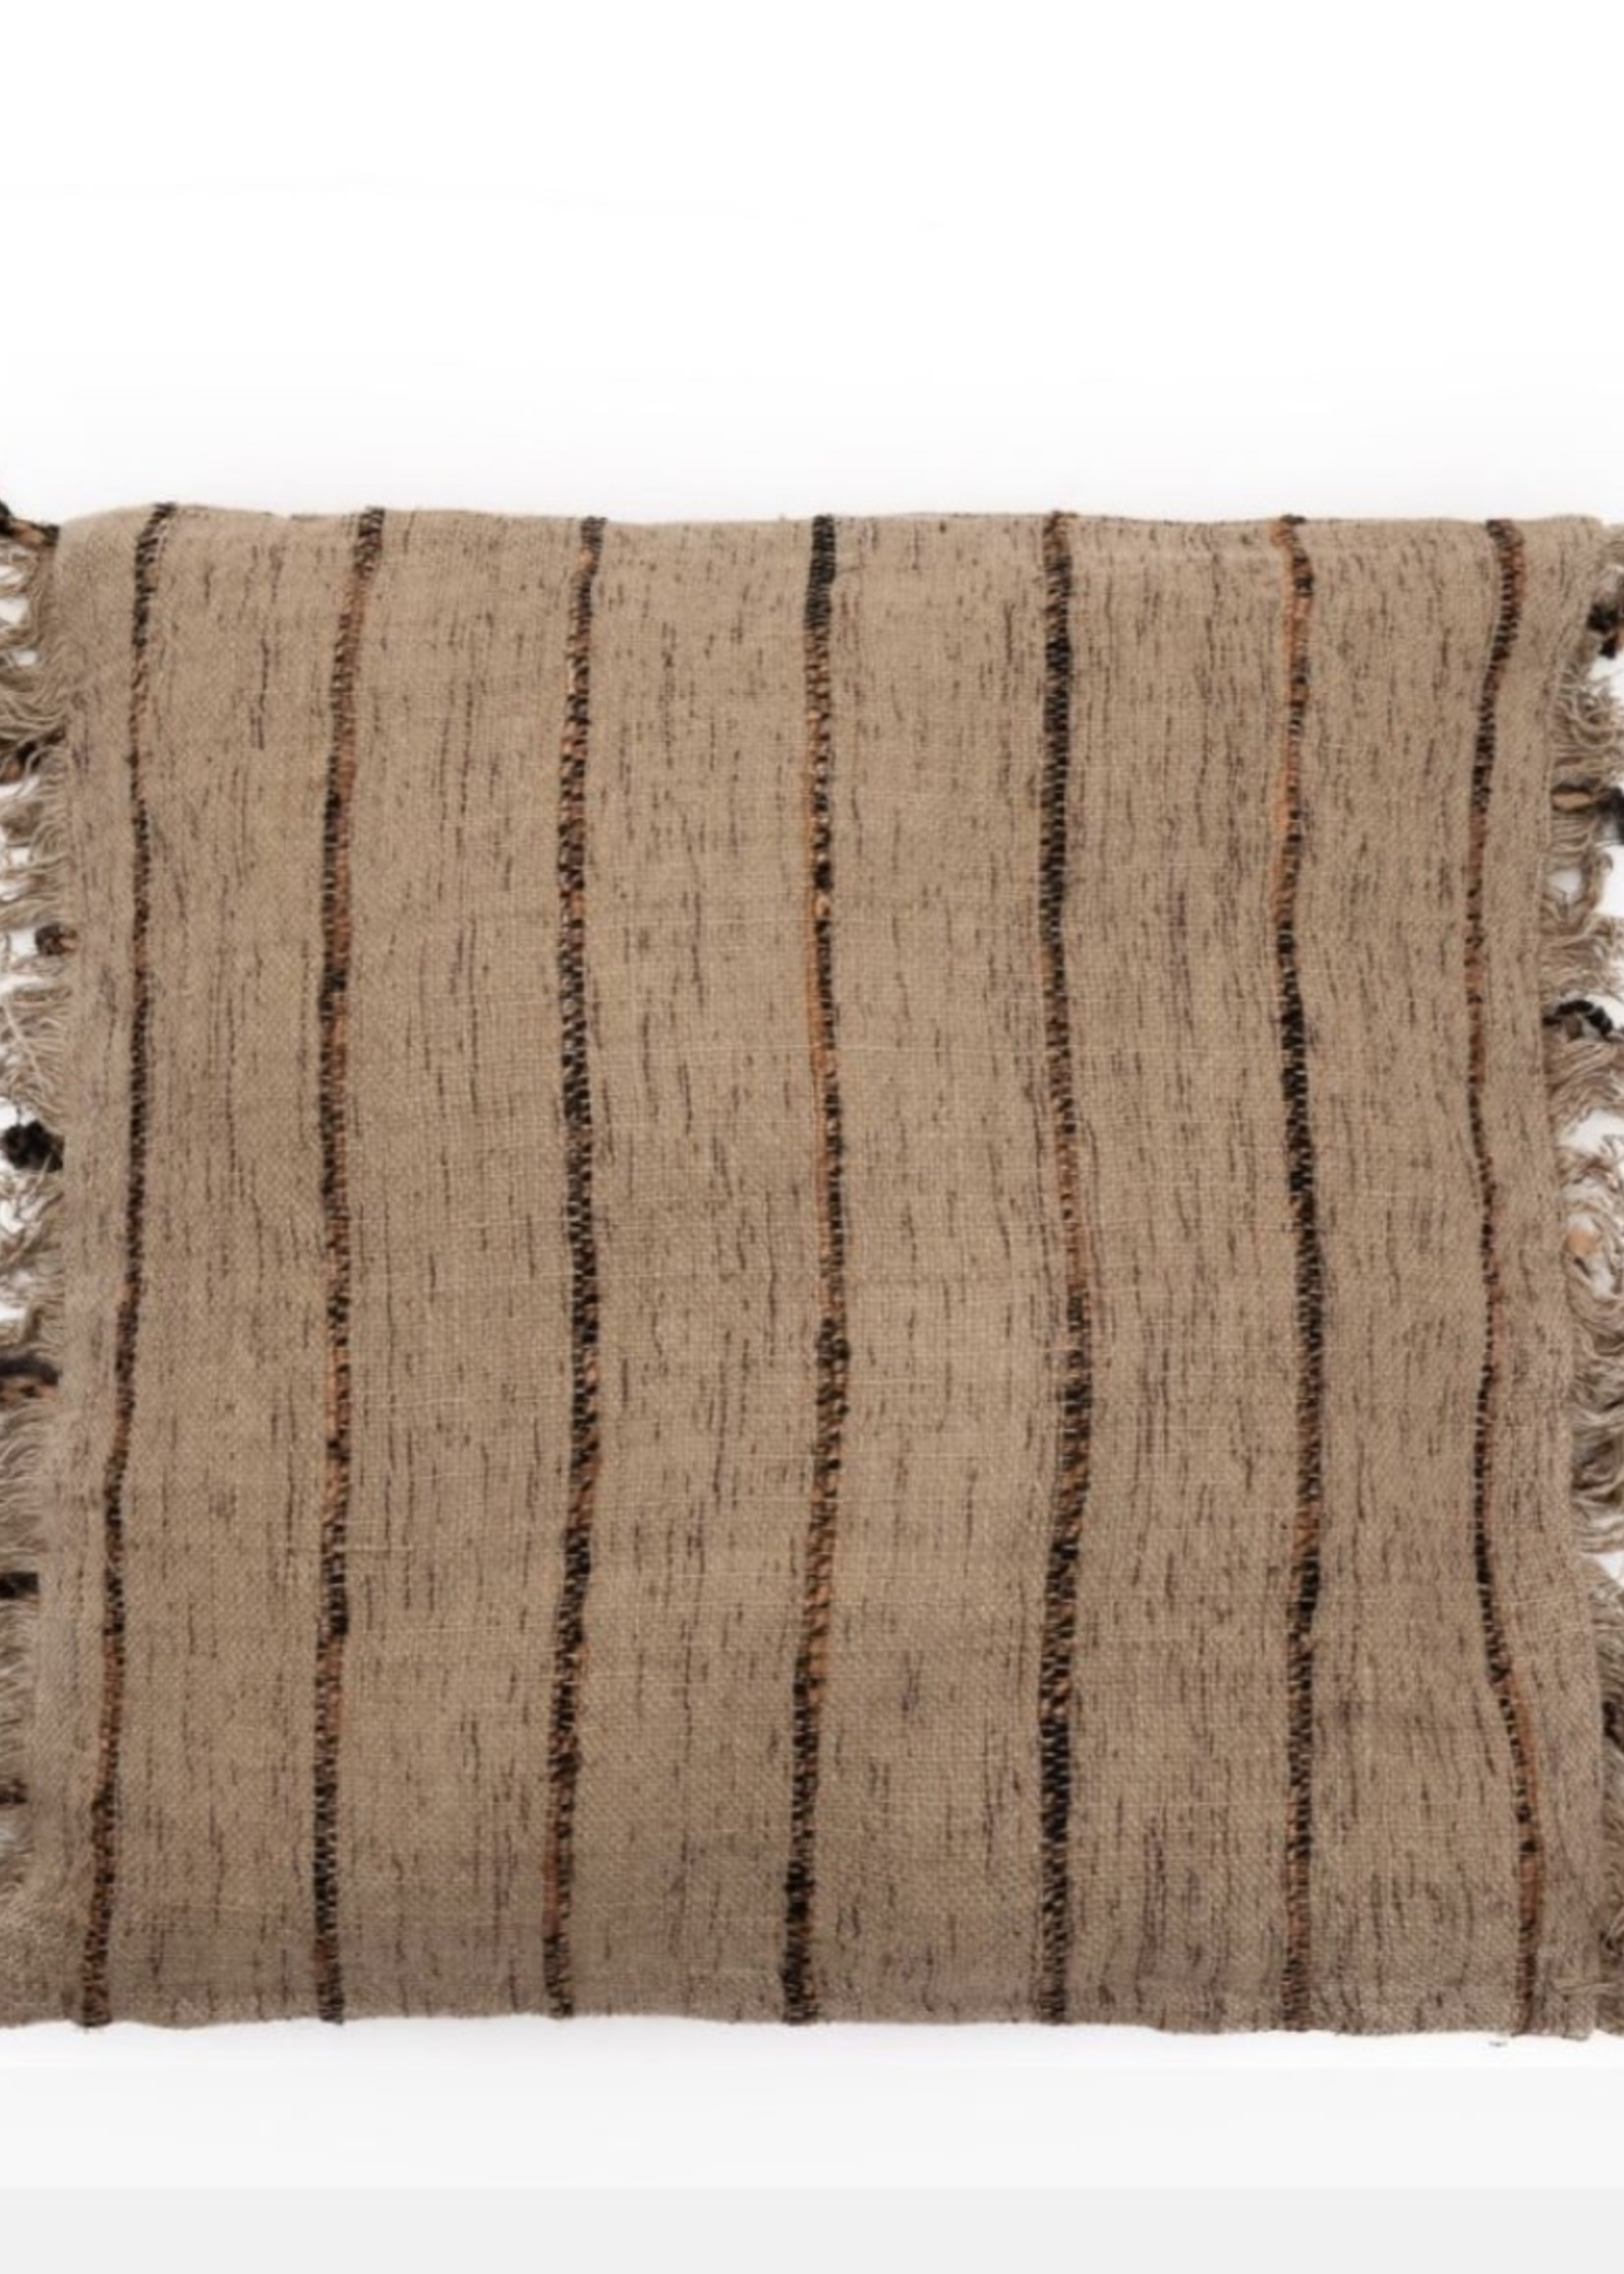 Guts & Goats The Oh My Gee Cushion Cover - Beige Black